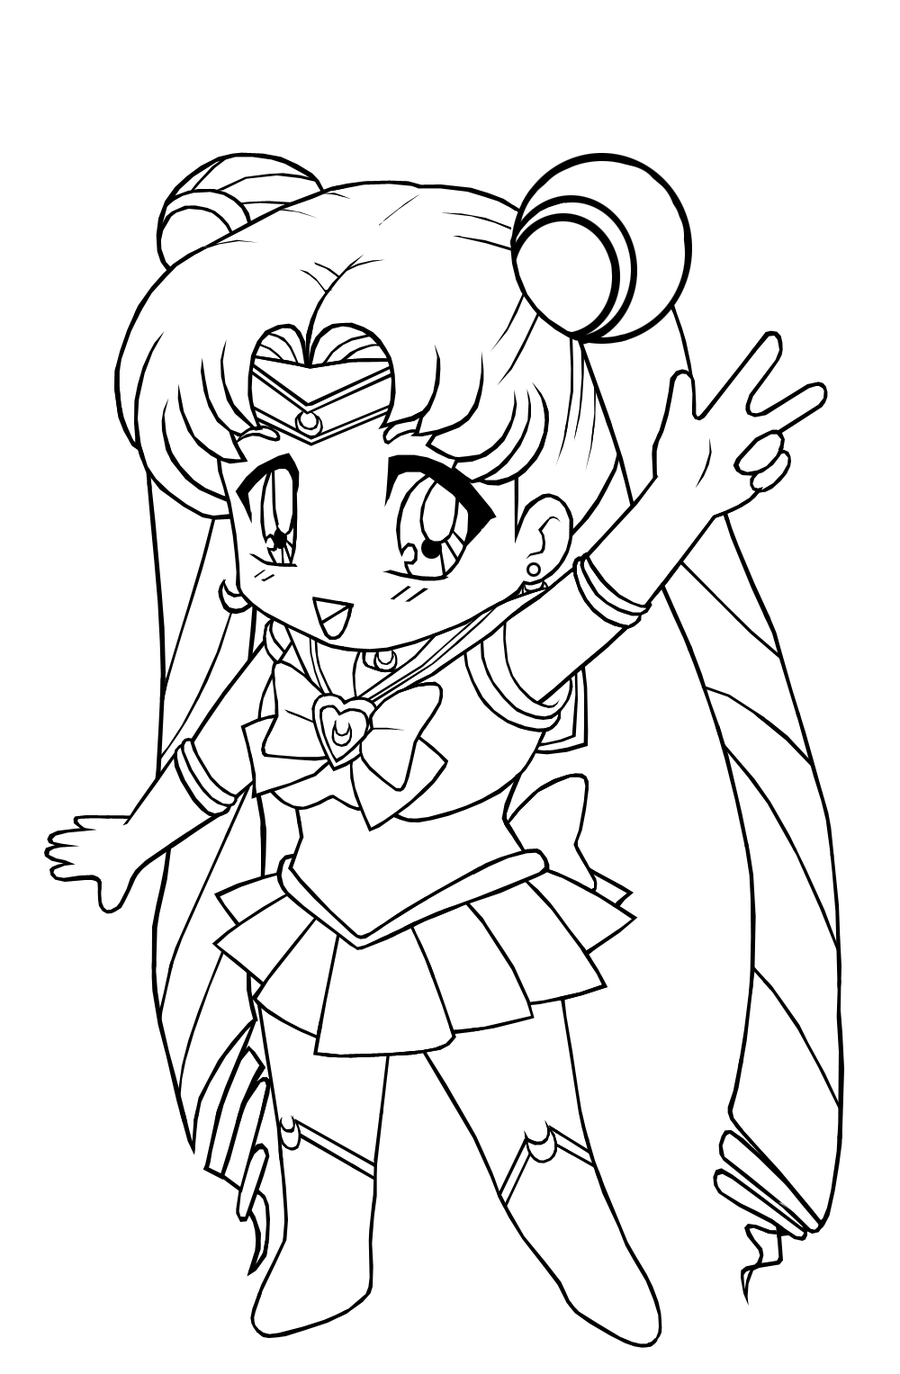 anime coloring pages google search coloring pinterest best - Kids Colouring Pages To Print